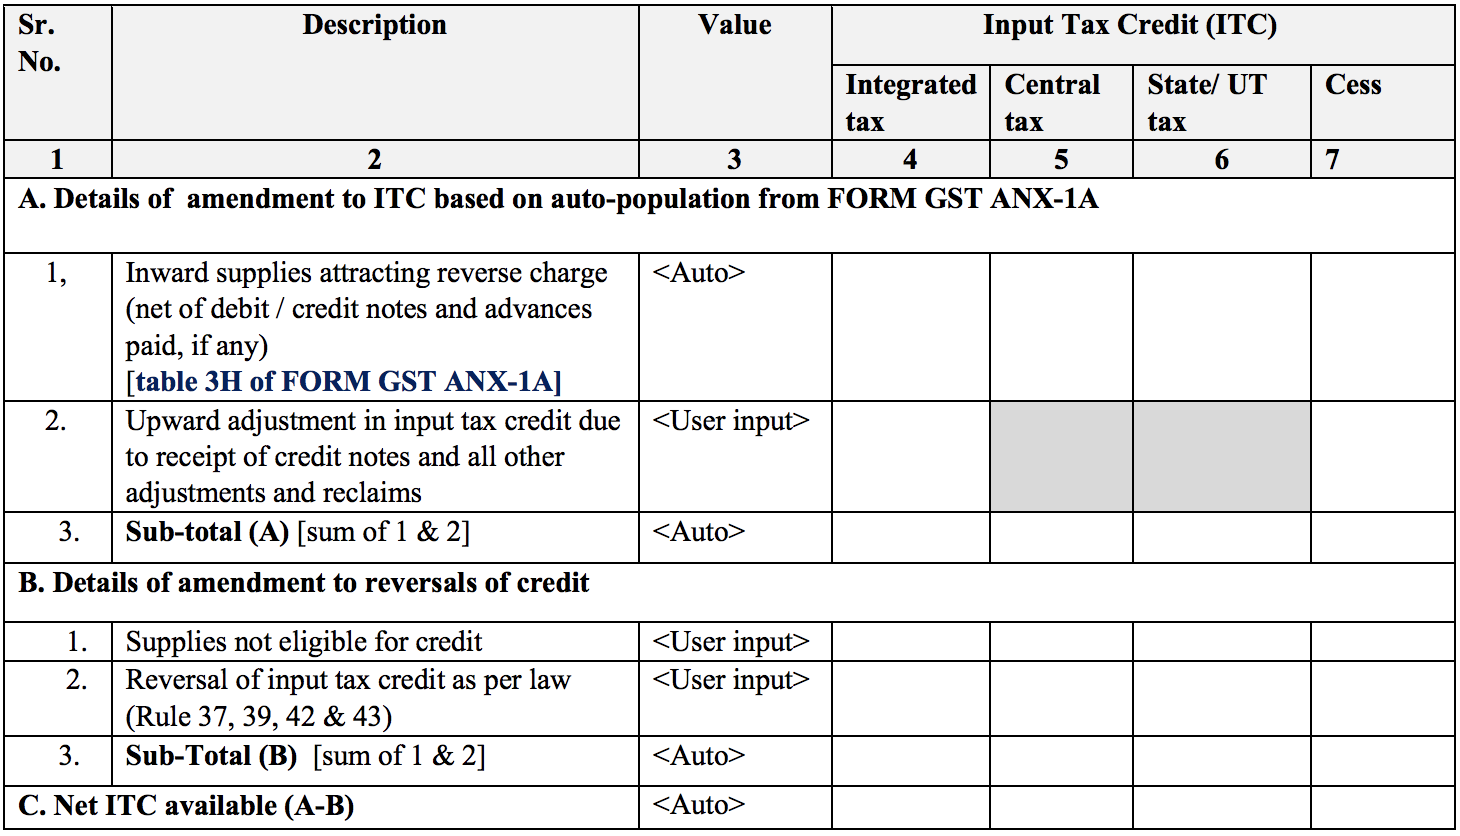 Summary of inward supplies for claiming ITC in Sugam return form GST RET-3A